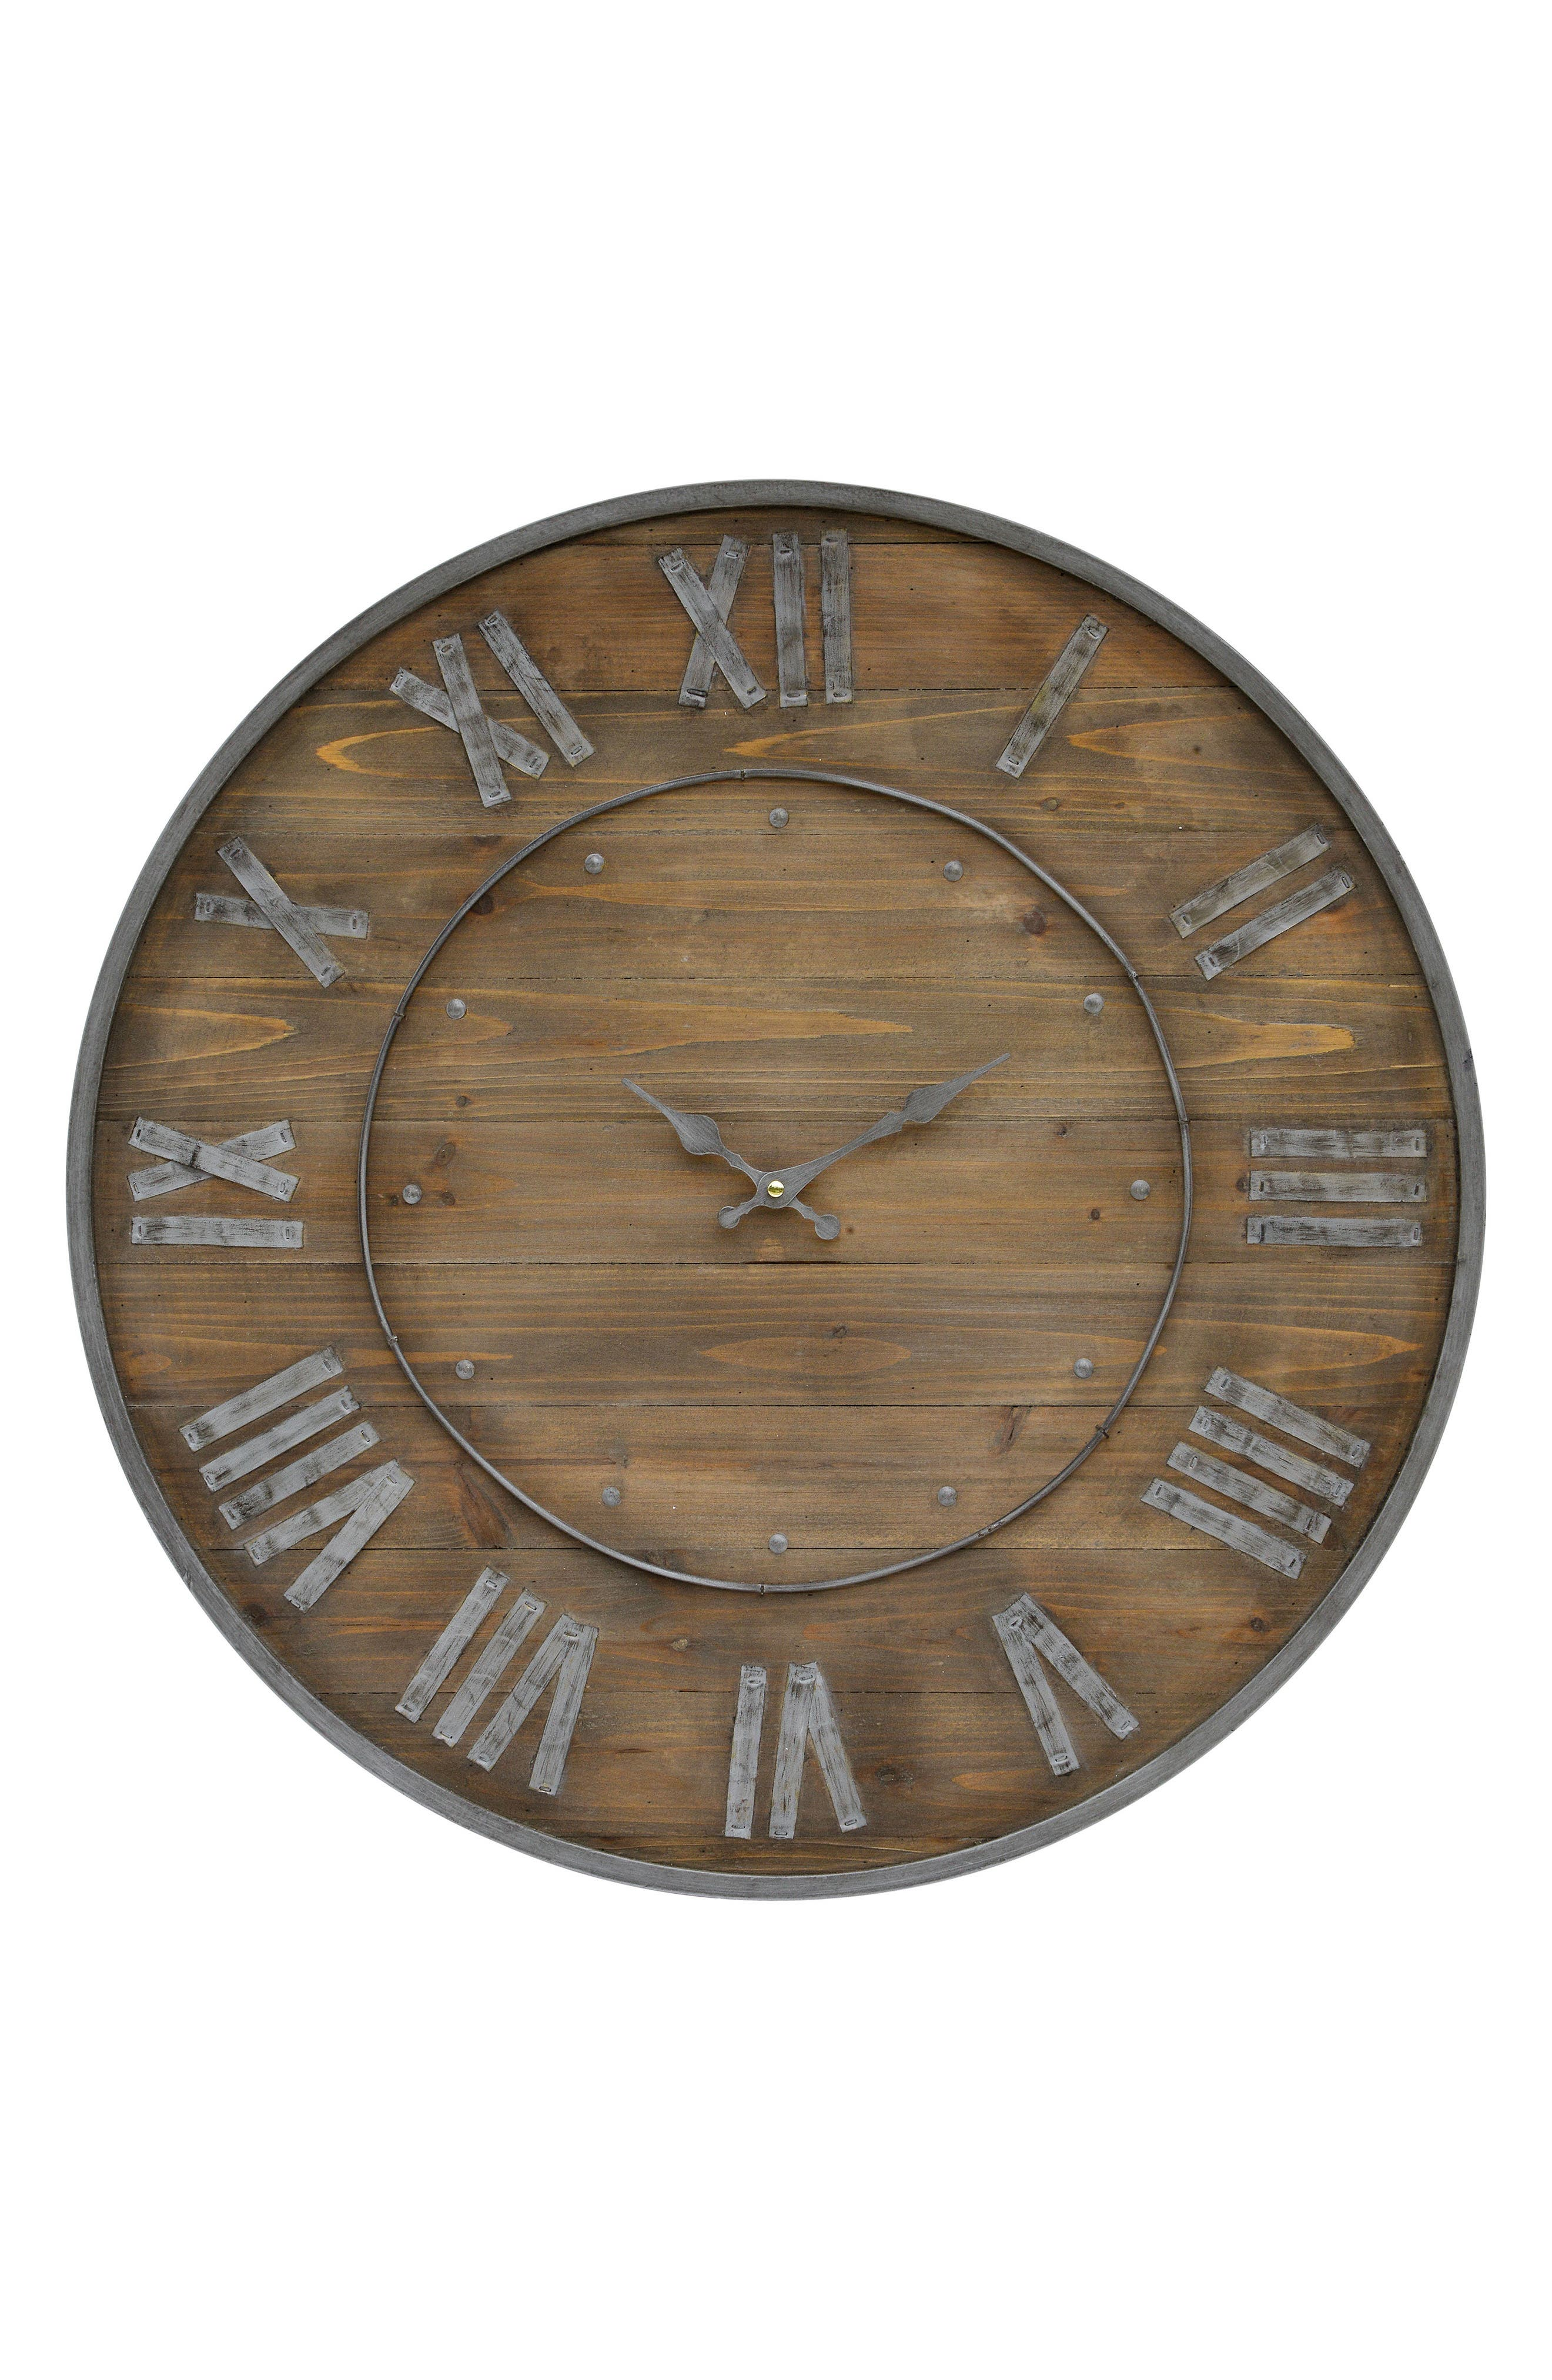 Renwil Wooden Wall Clock